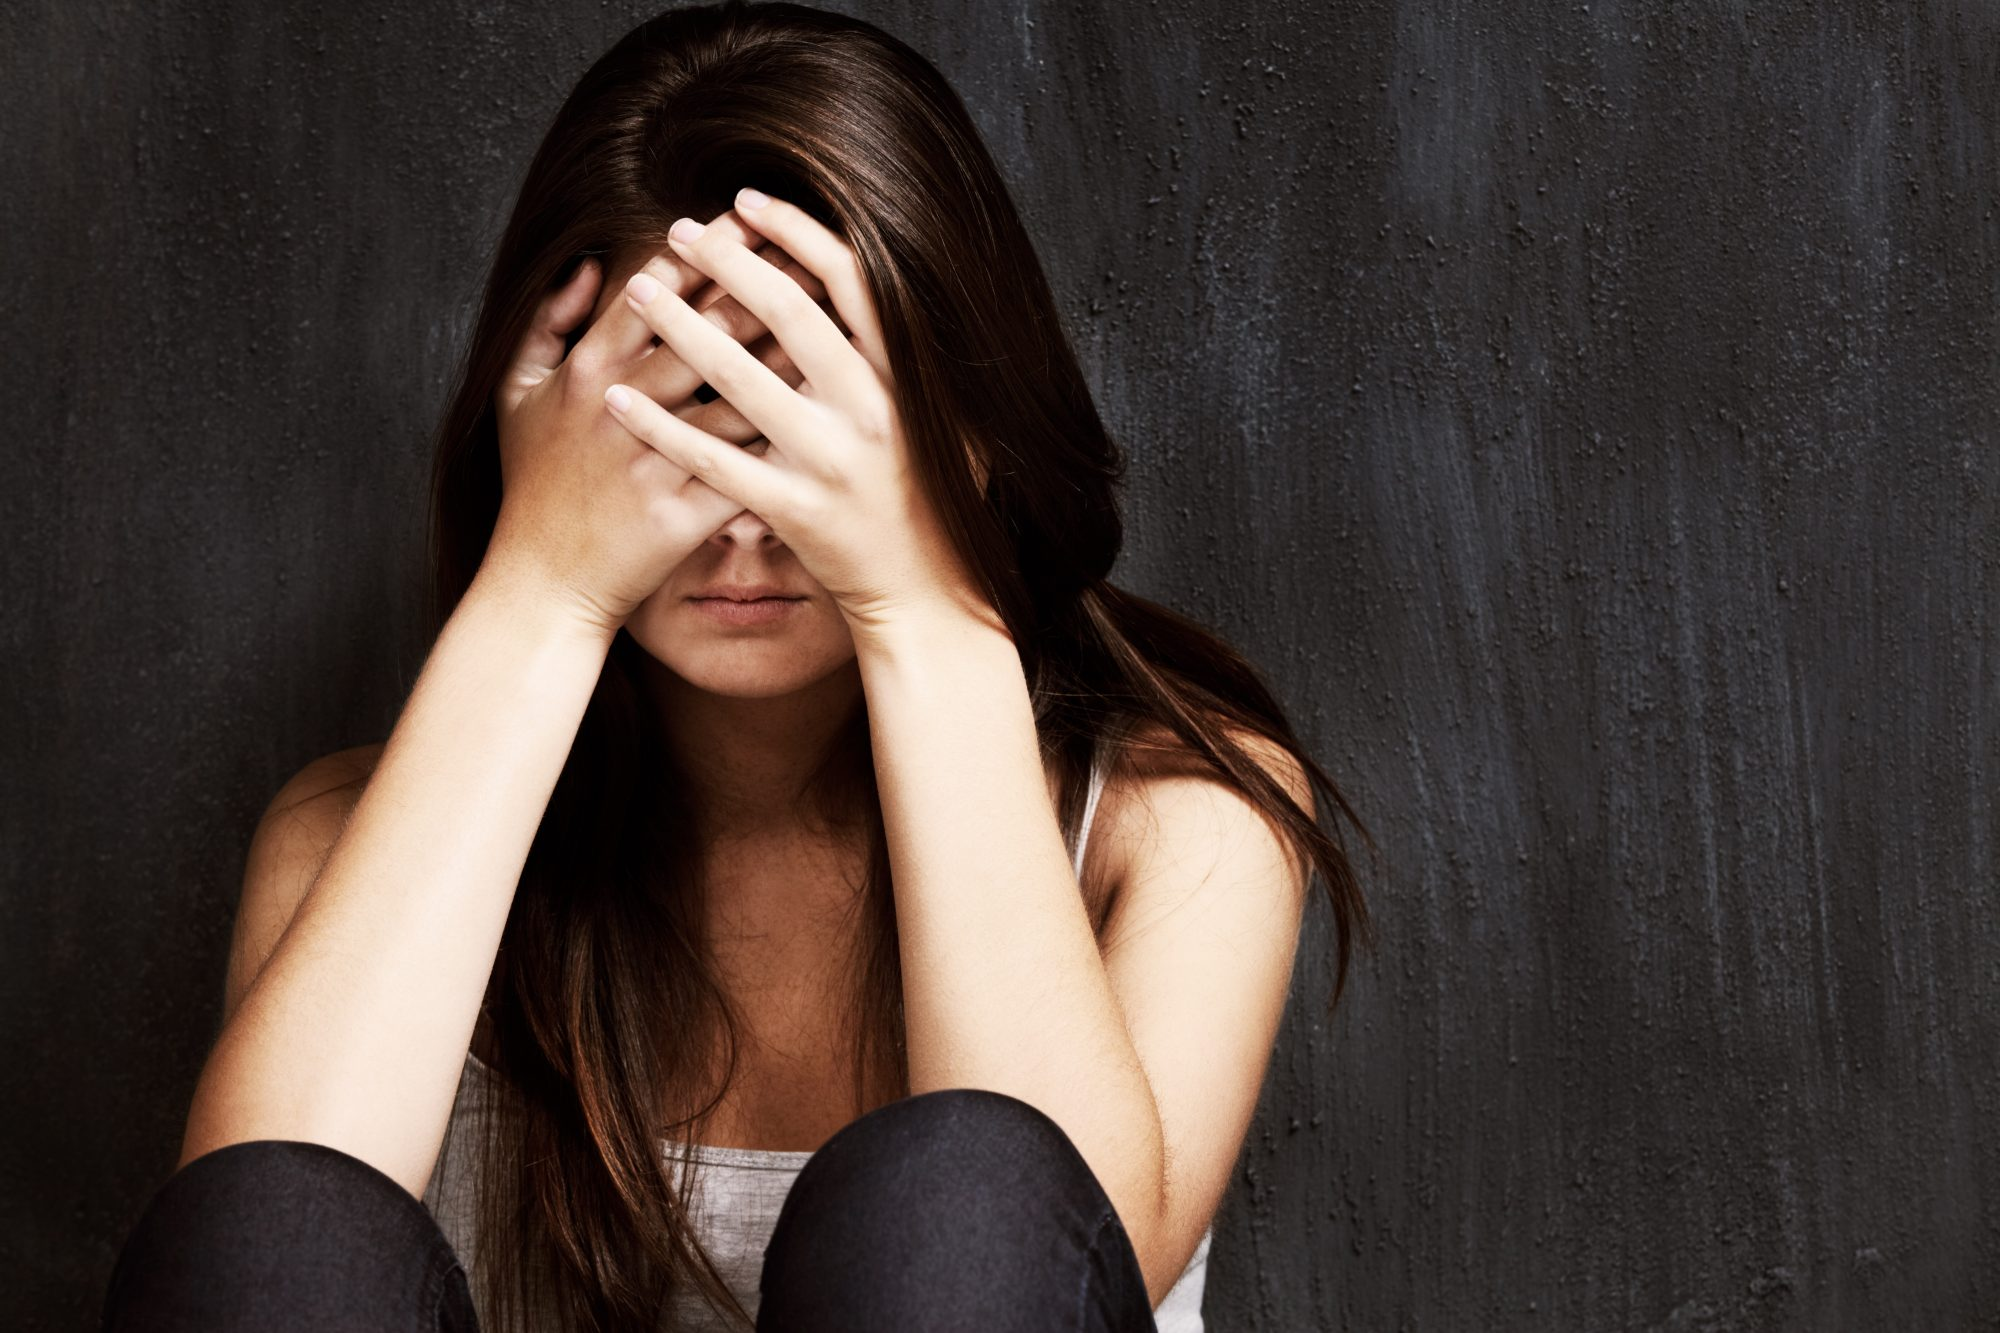 Photo of Sad Young Woman Holding Her Head in Her Hands